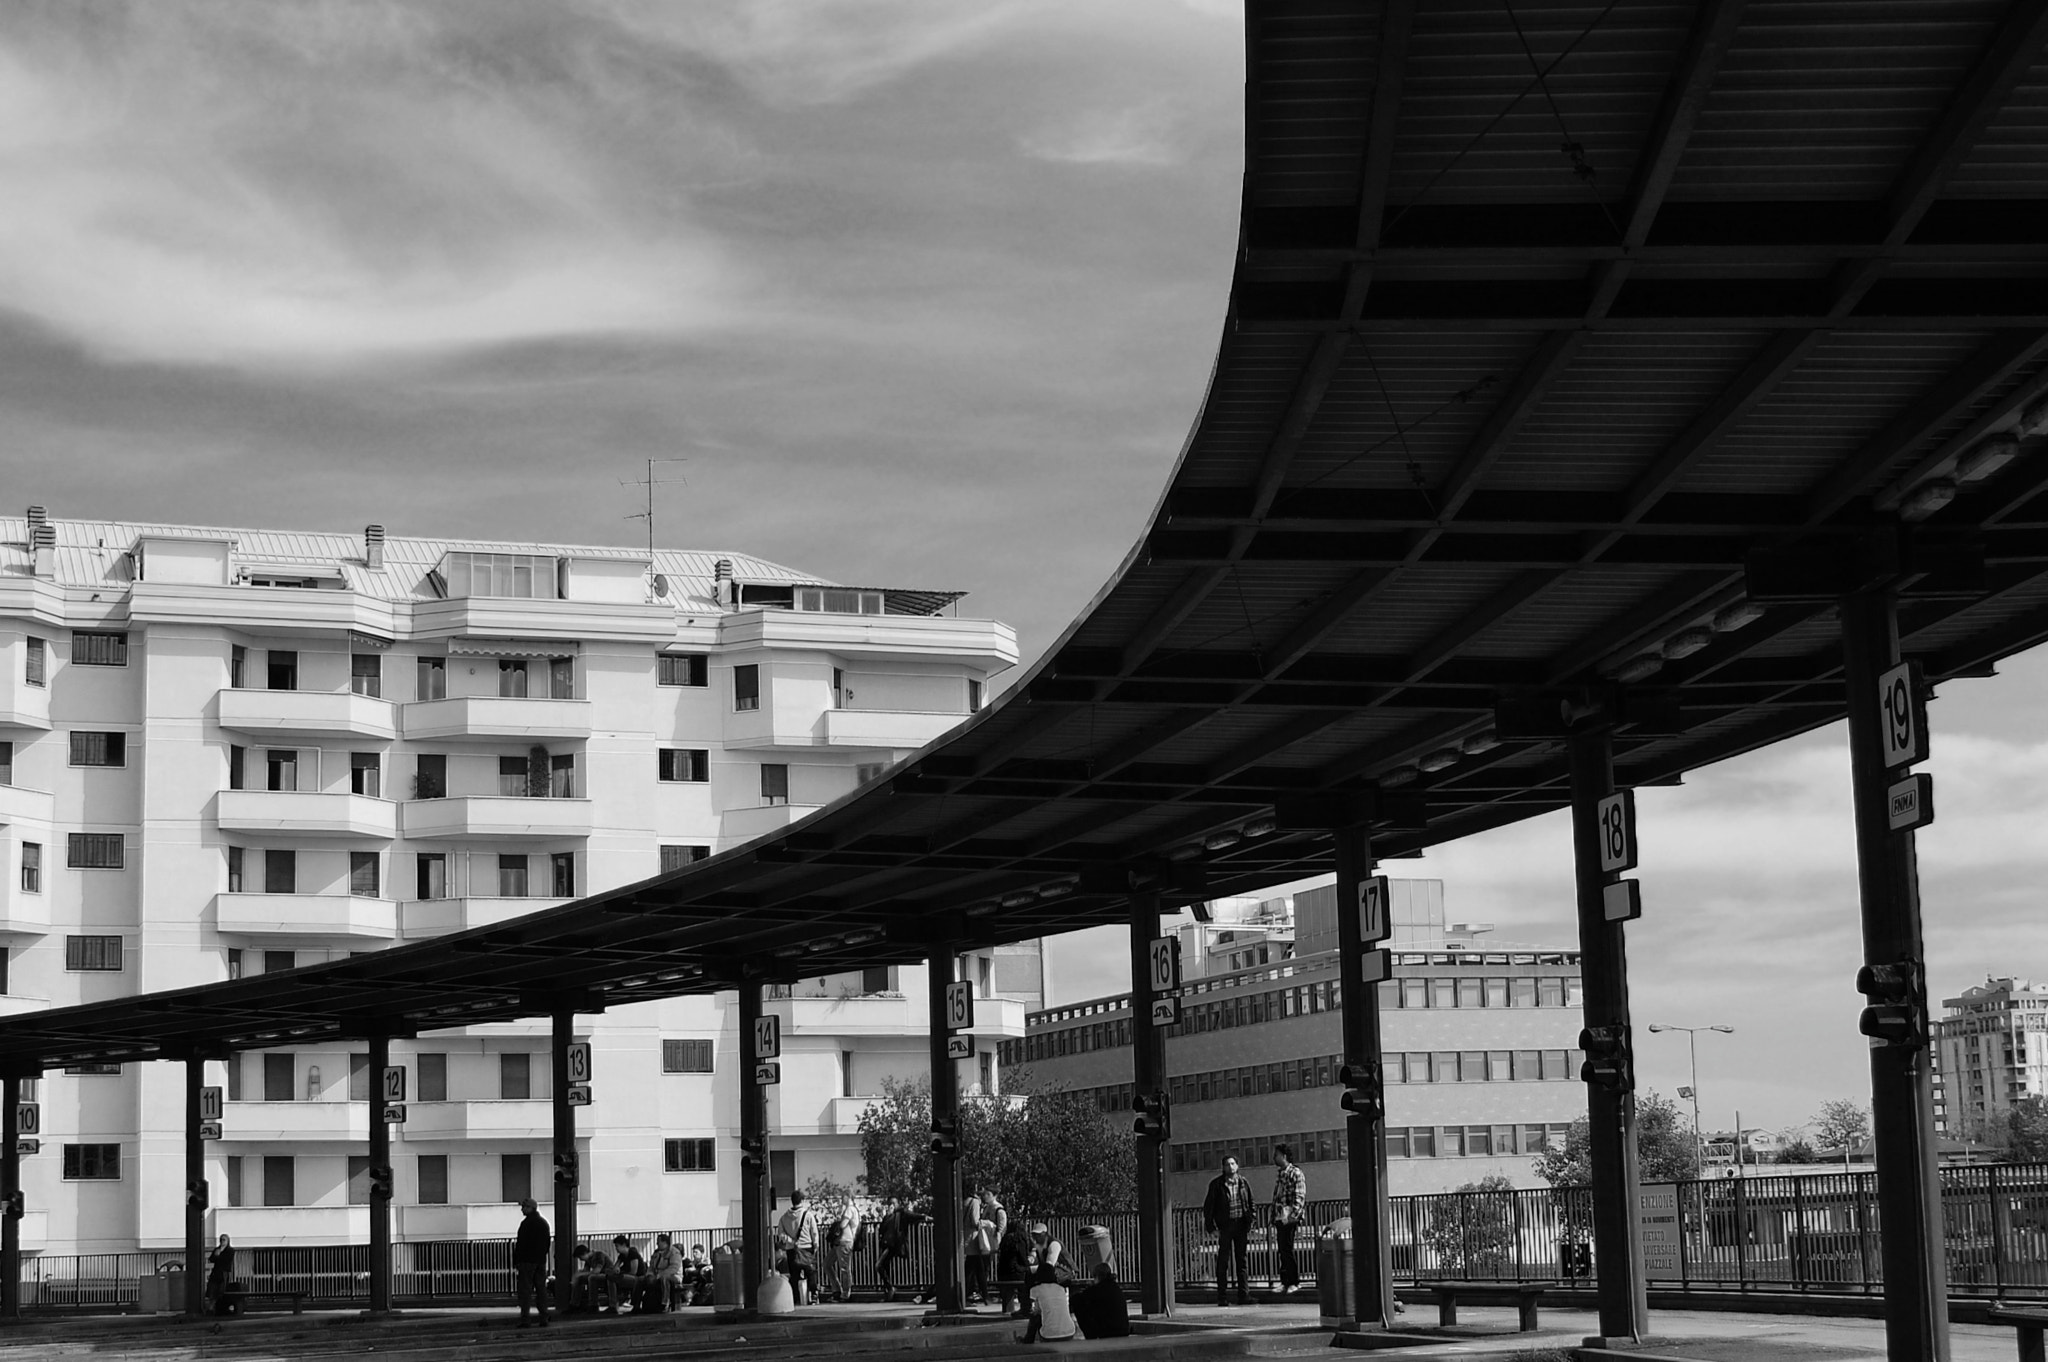 Photograph Bus Station by Fabio Foggetti on 500px